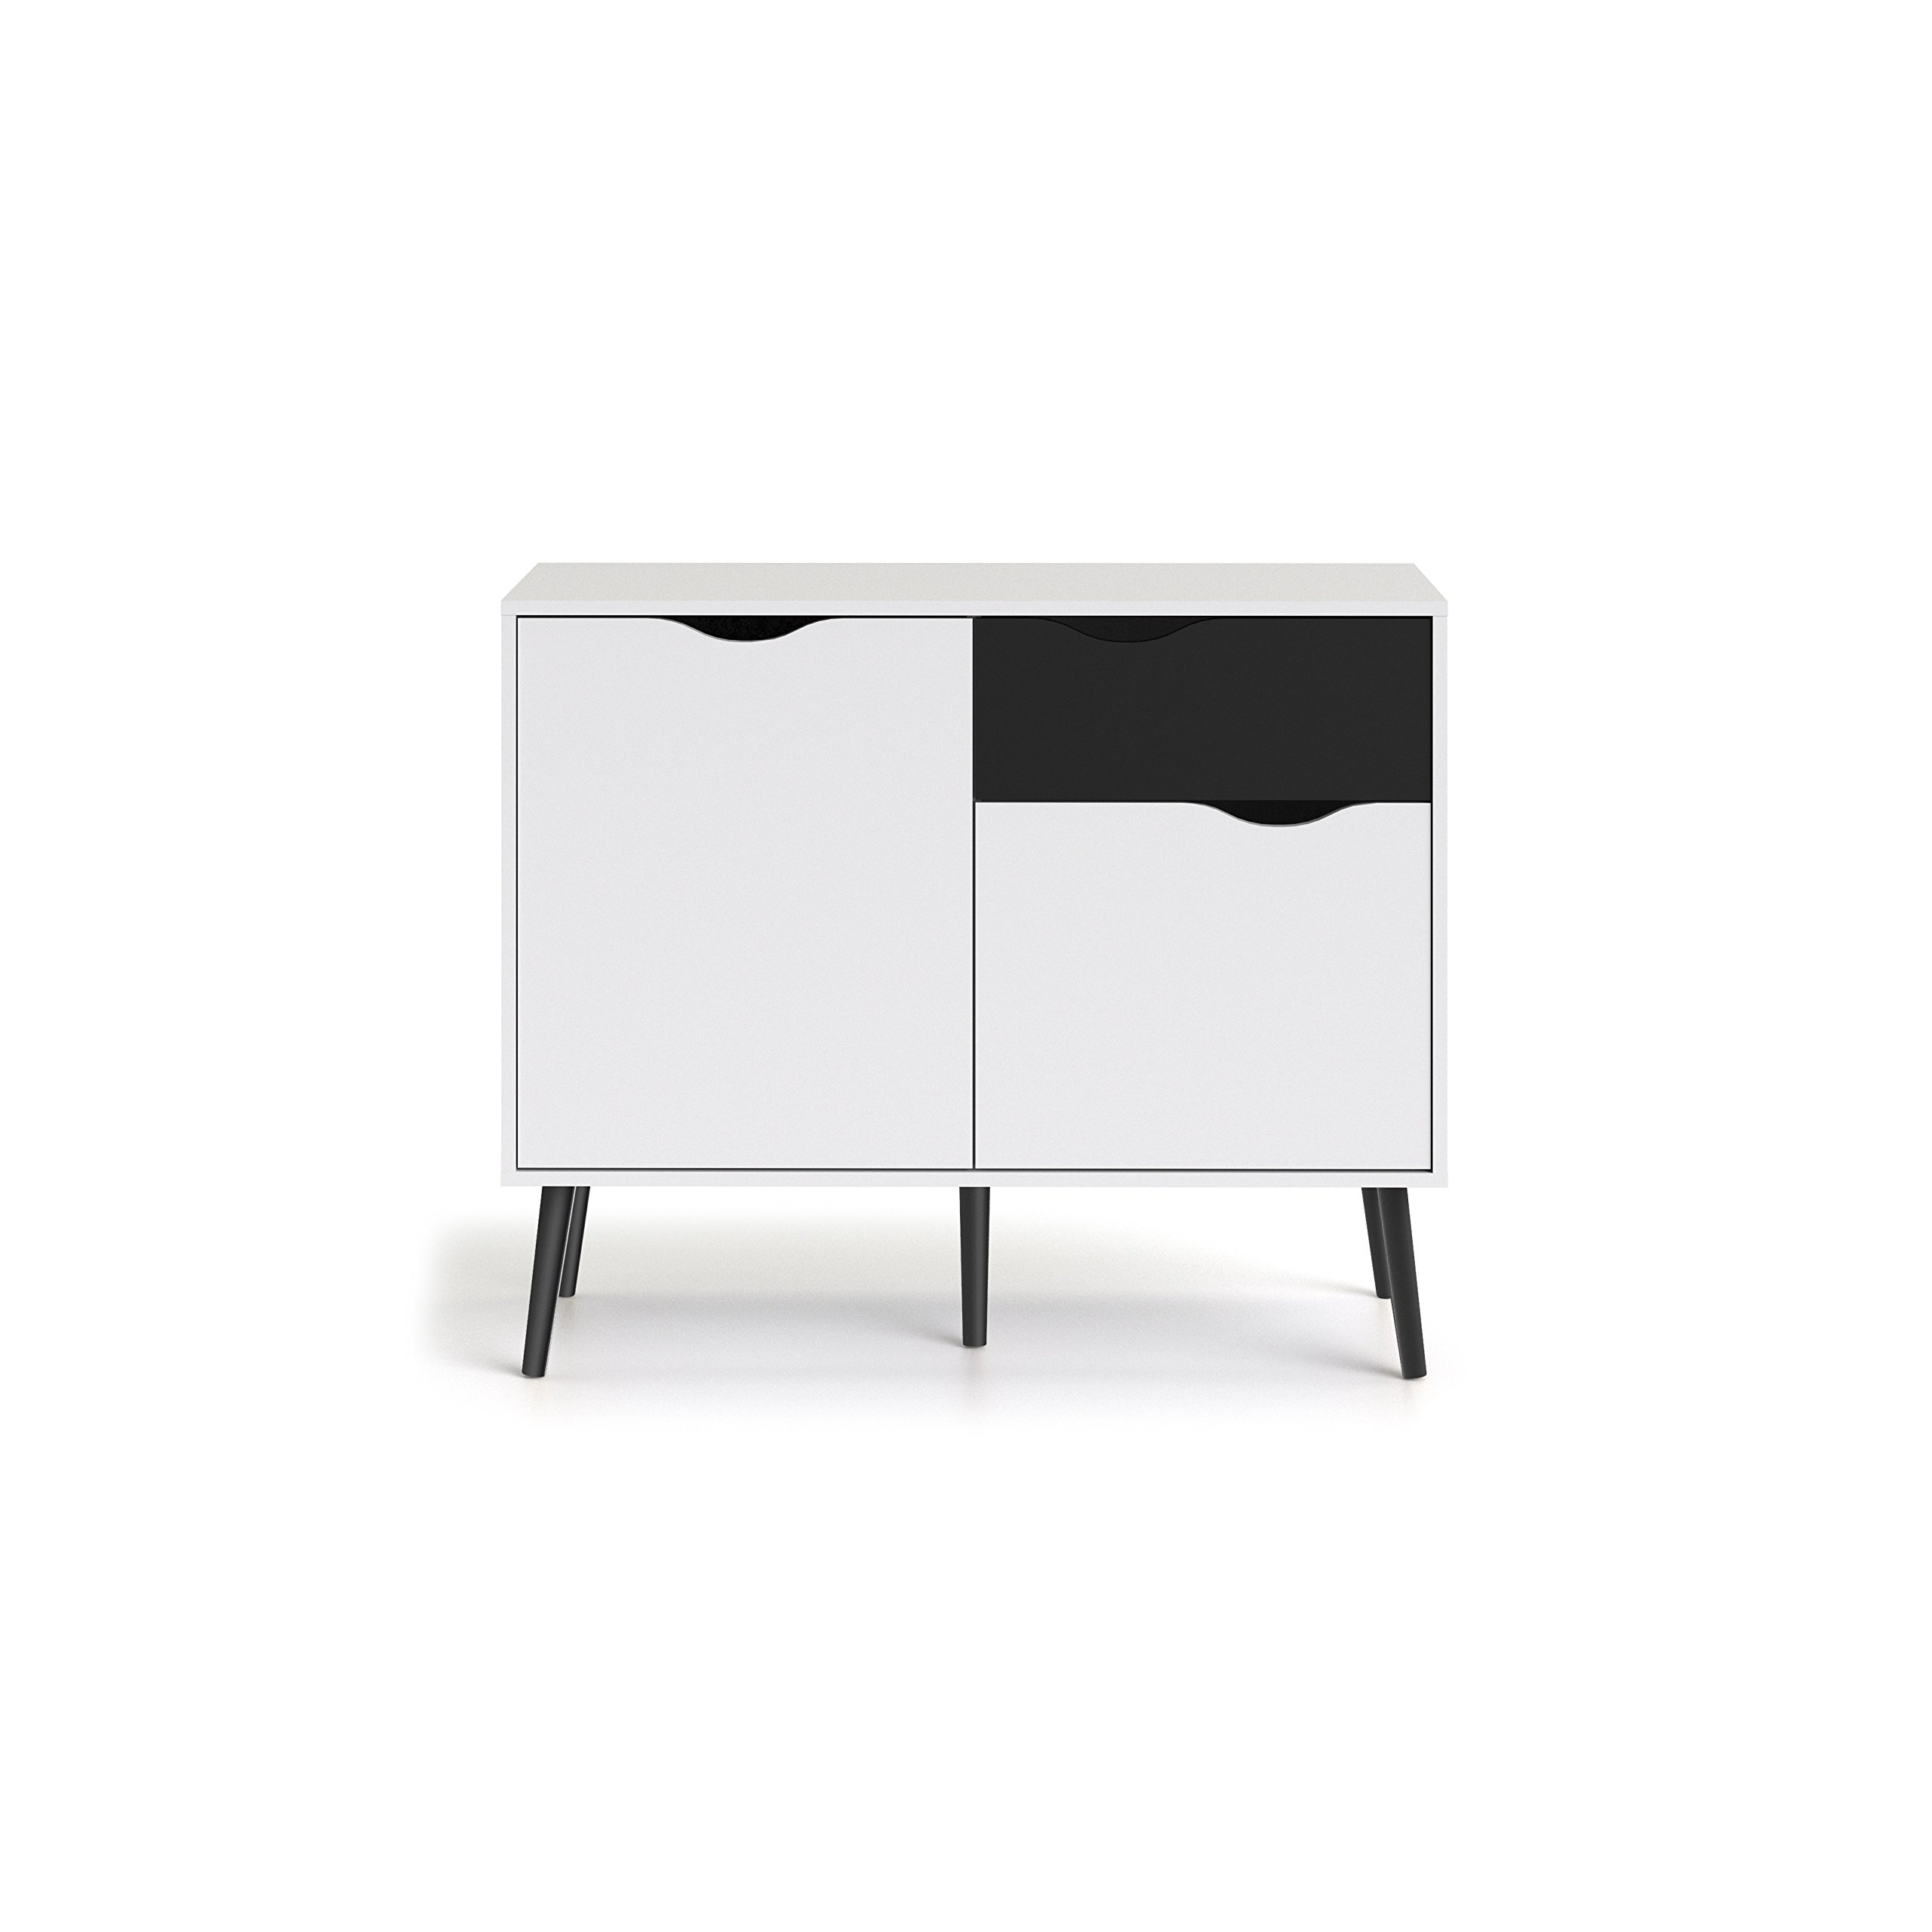 Tvilum 7538749gm Diana Sideboard with 2 Doors and 1 Drawer, White/Black Matte